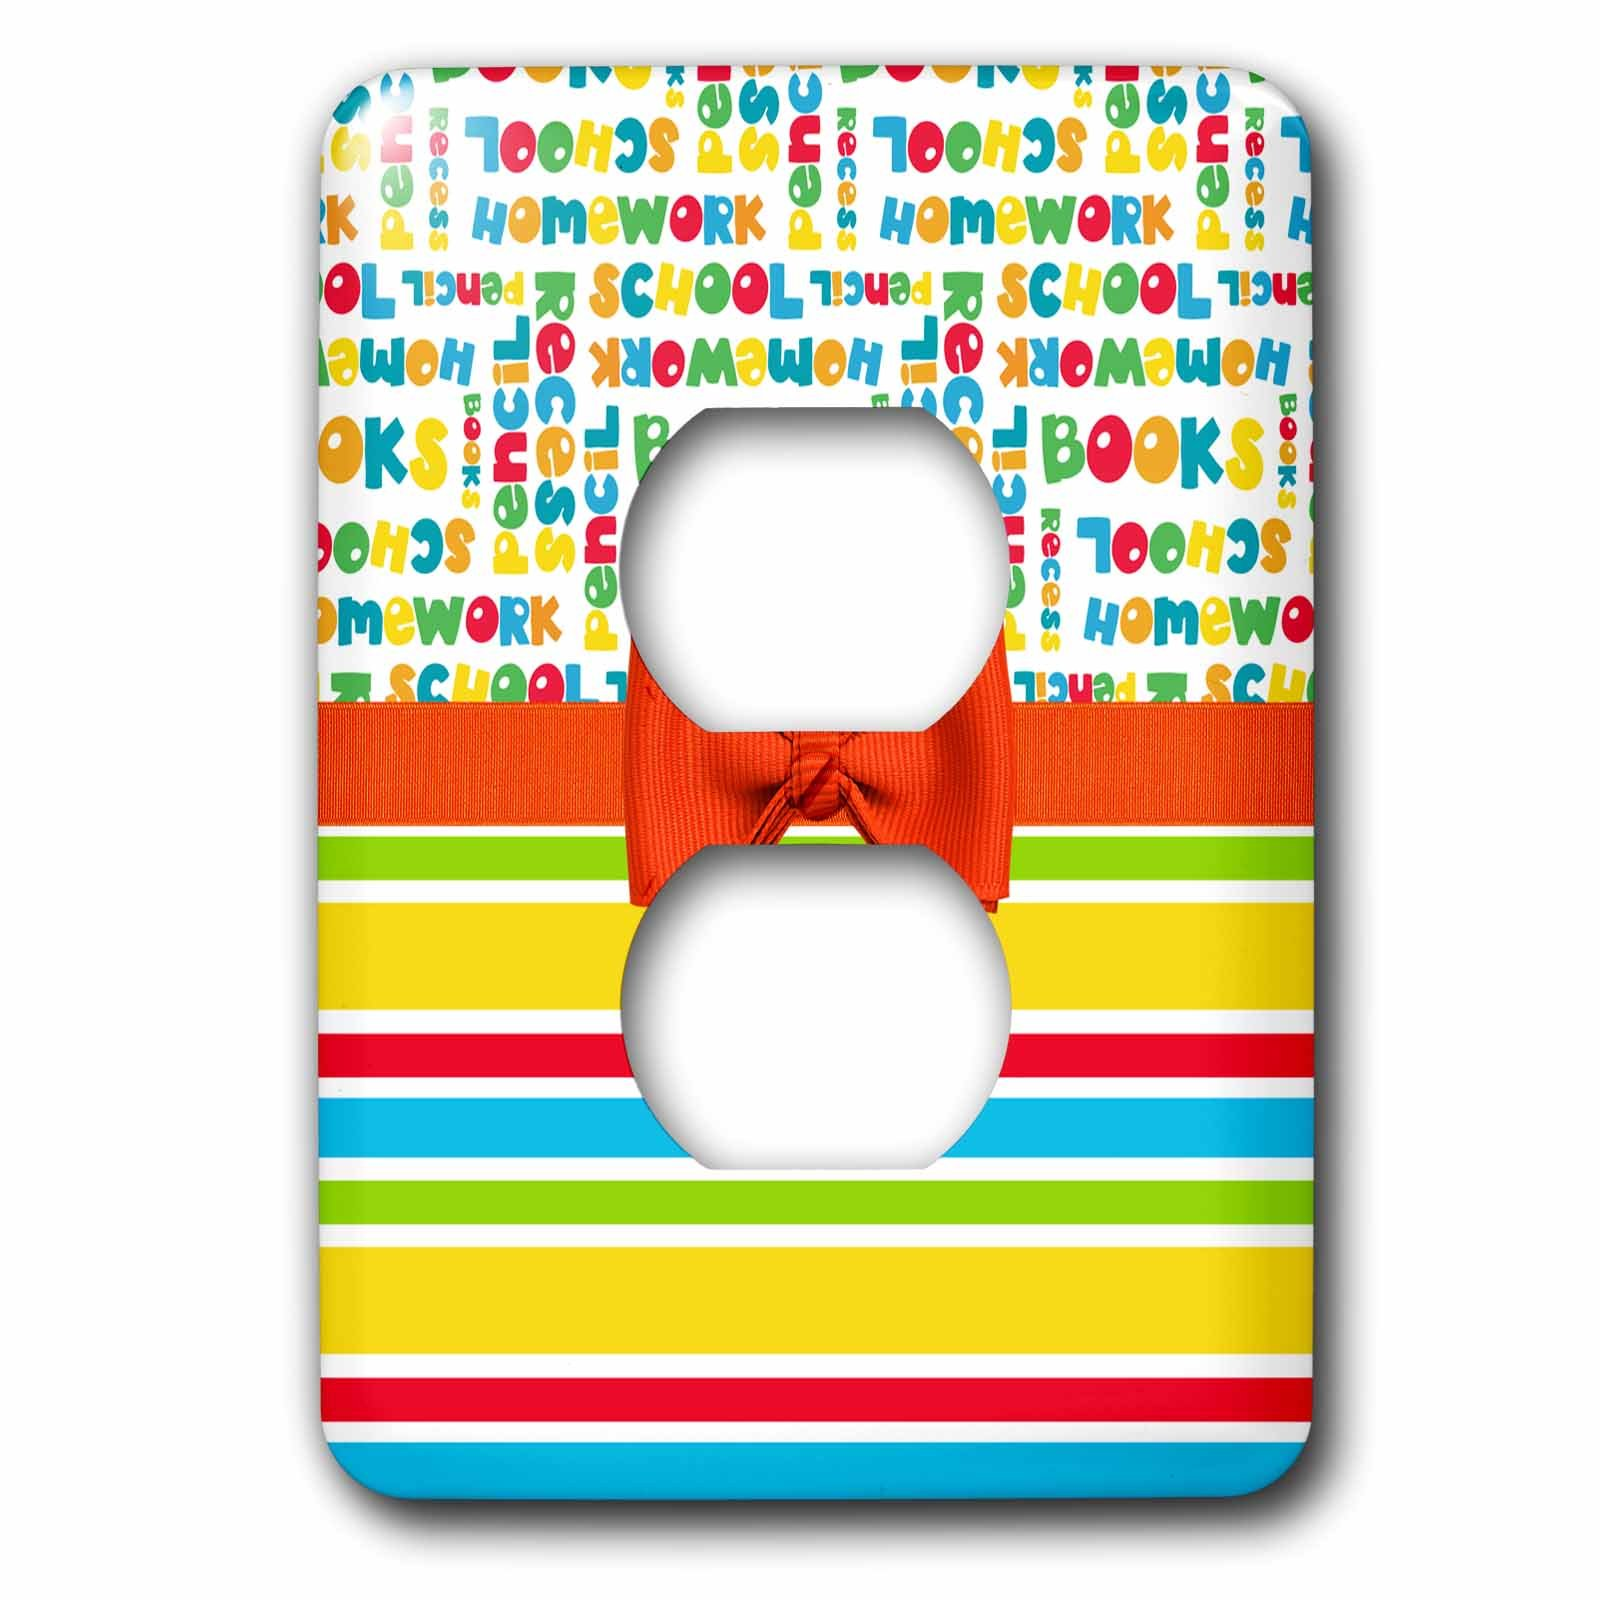 3dRose Anne Marie Baugh - Designs - Cute Primary Colors School Words Over Stripes With Digital Bow - Light Switch Covers - 2 plug outlet cover (lsp_282891_6)